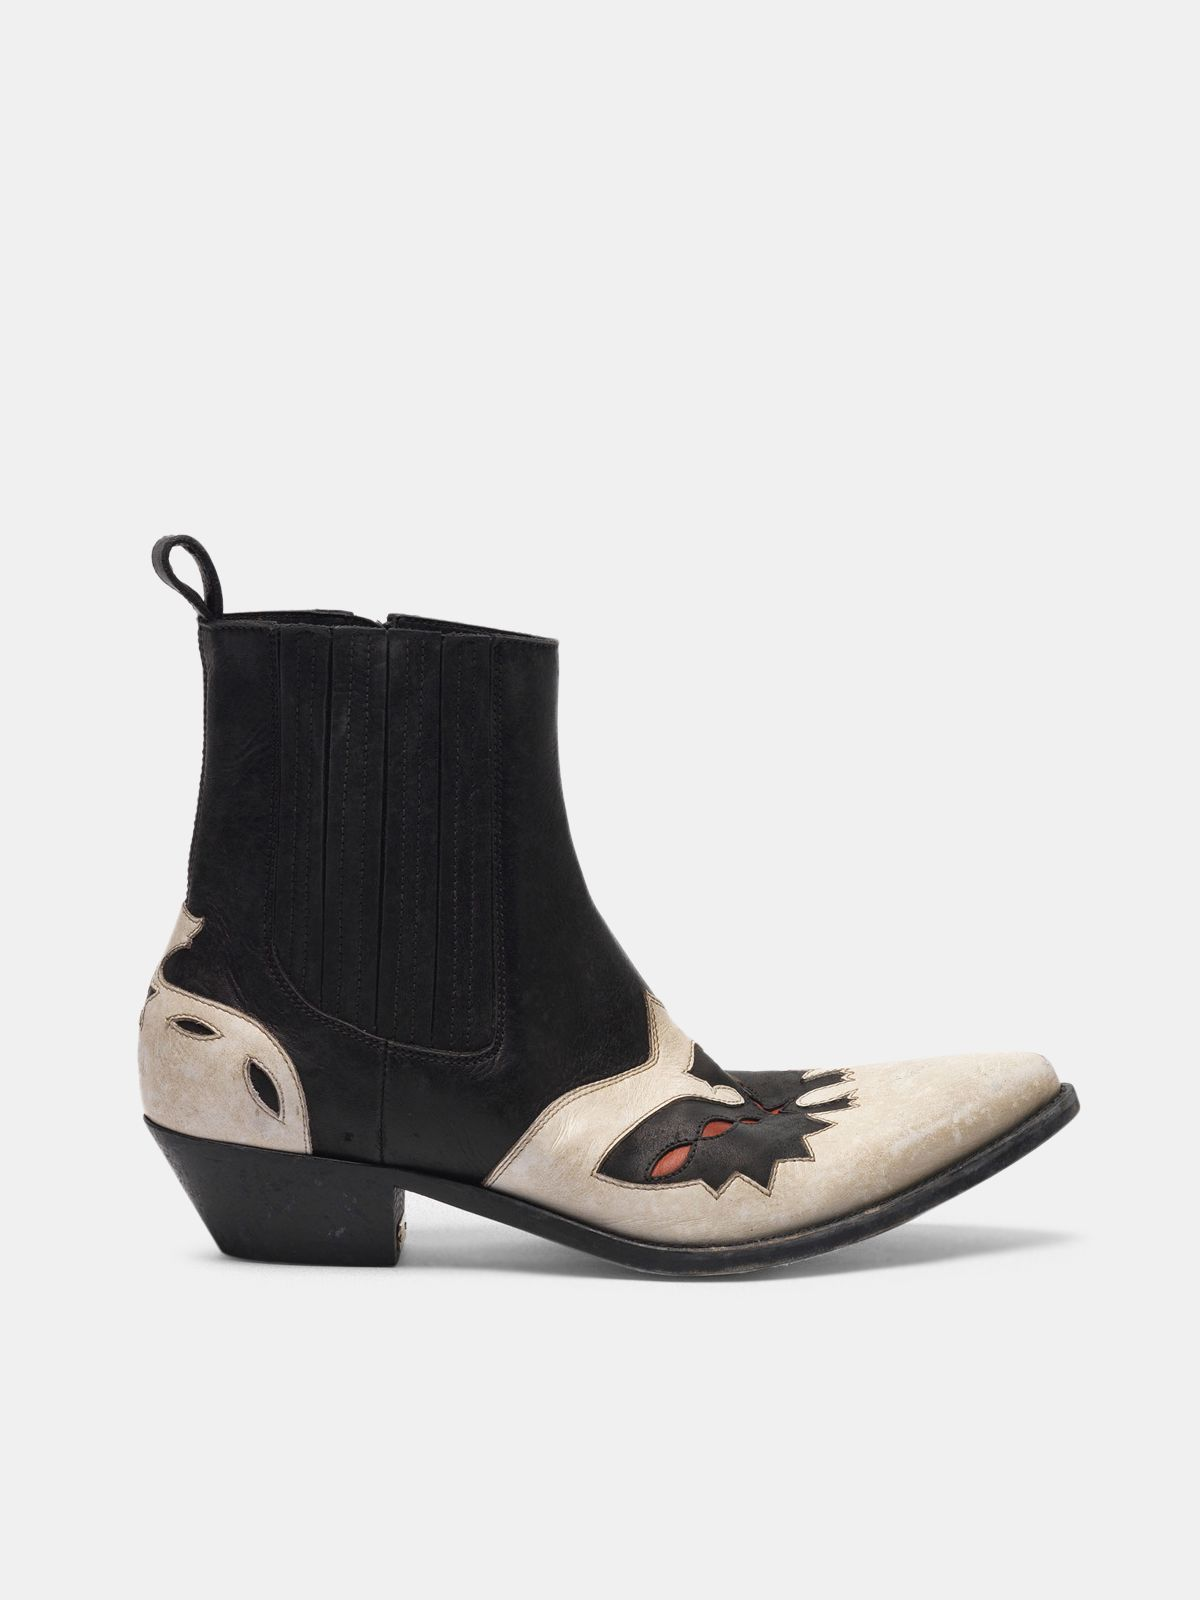 Golden Goose - Austin ankle boots in black and white with eagle in